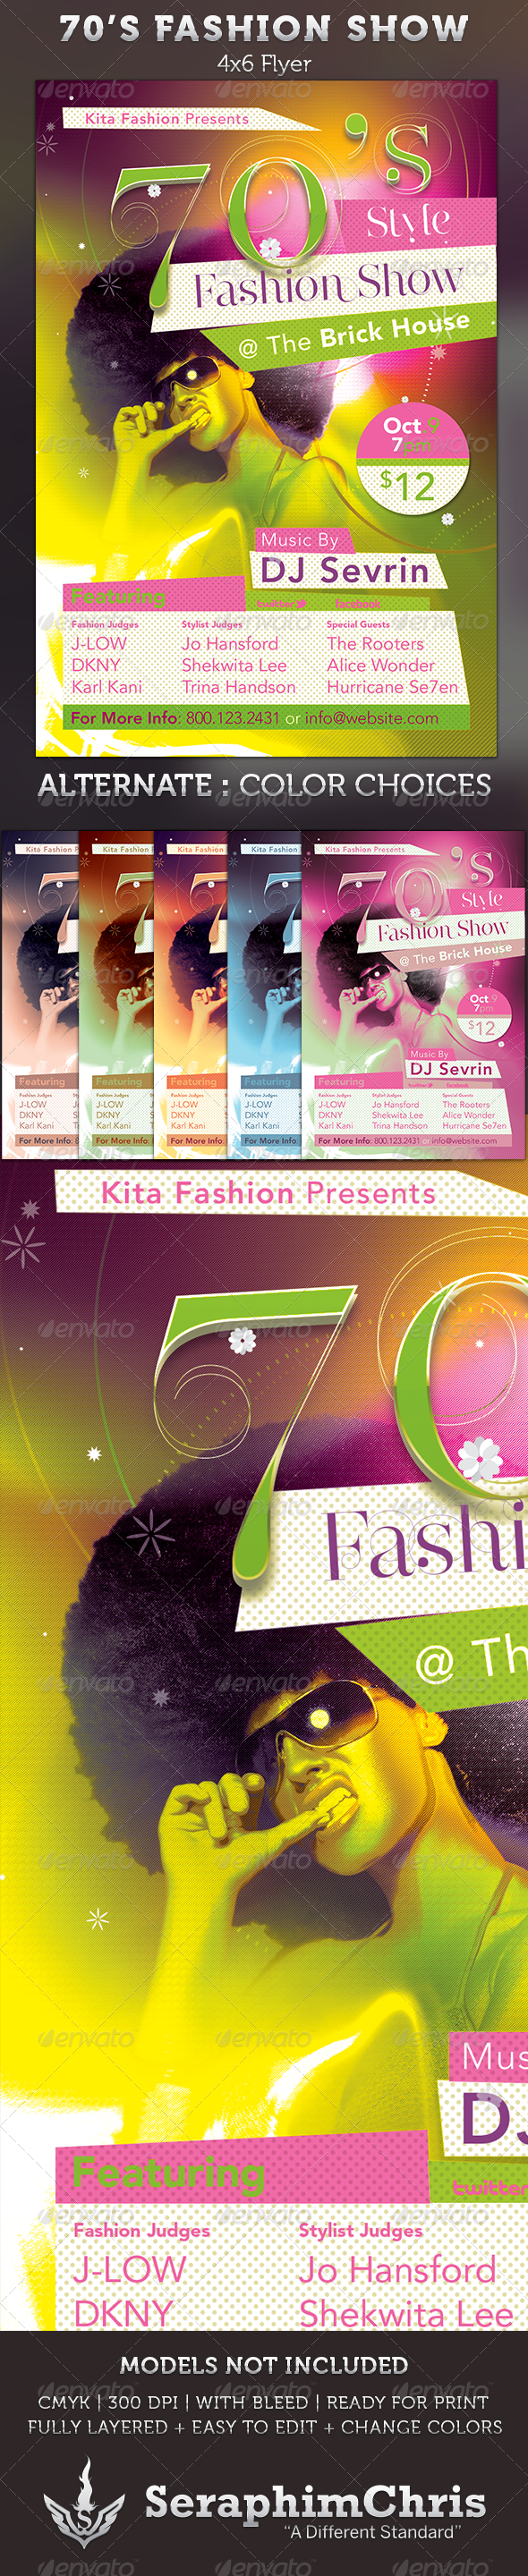 70's Fashion Show Flyer Template - Events Flyers